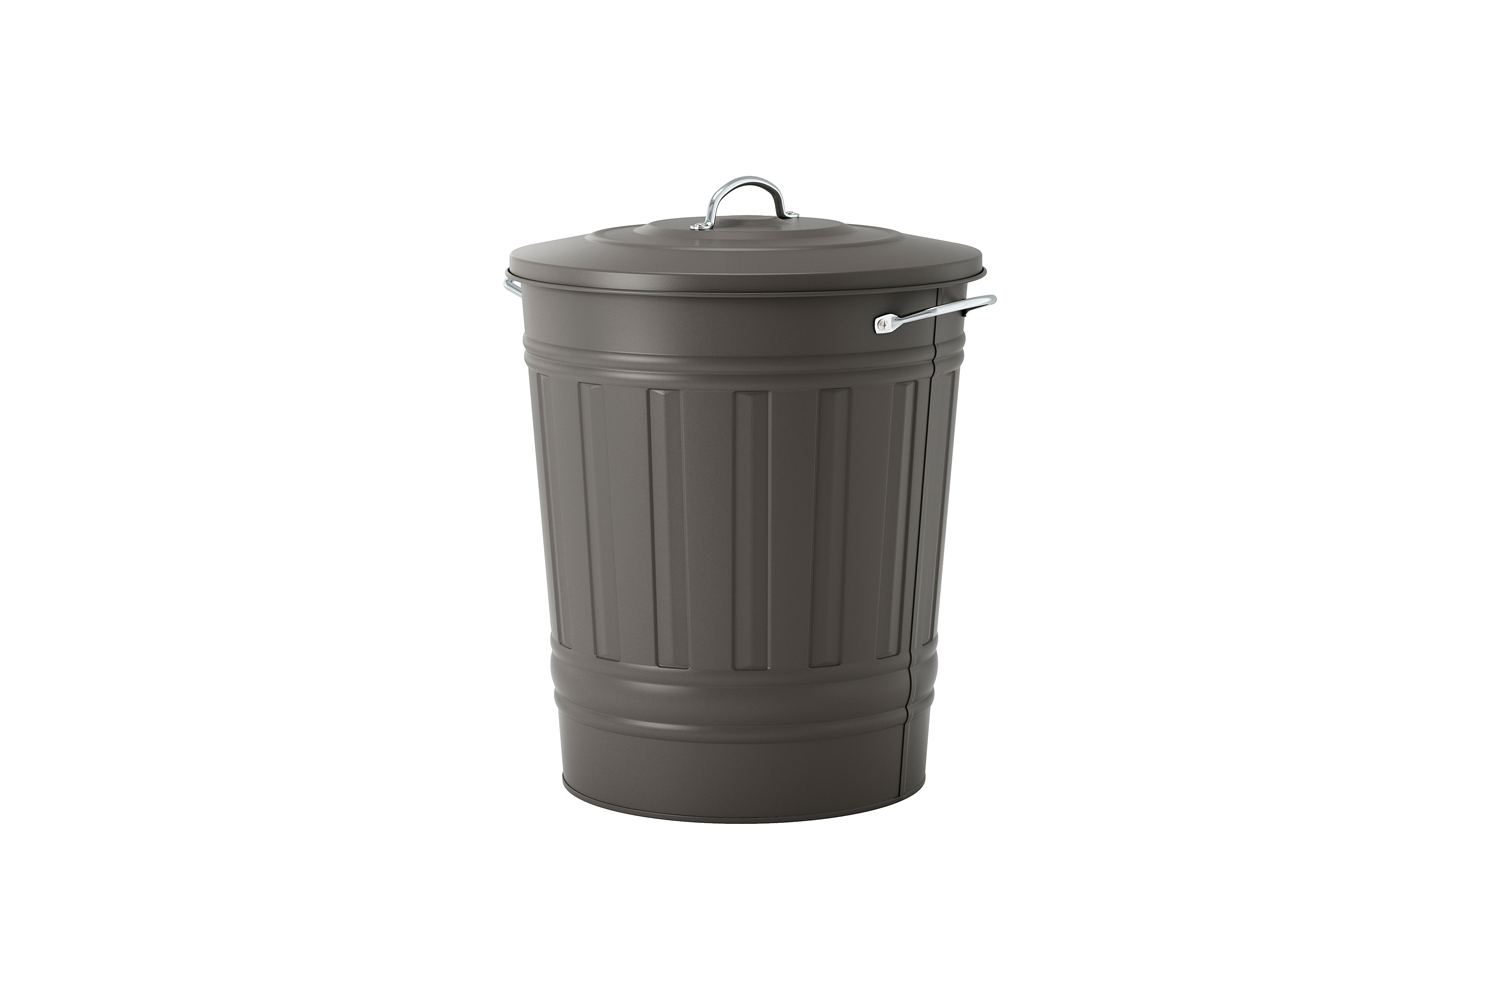 The IKEA Knodd Bin with Lid Gray is a longtime Remodelista favorite for style and affordability. It&#8